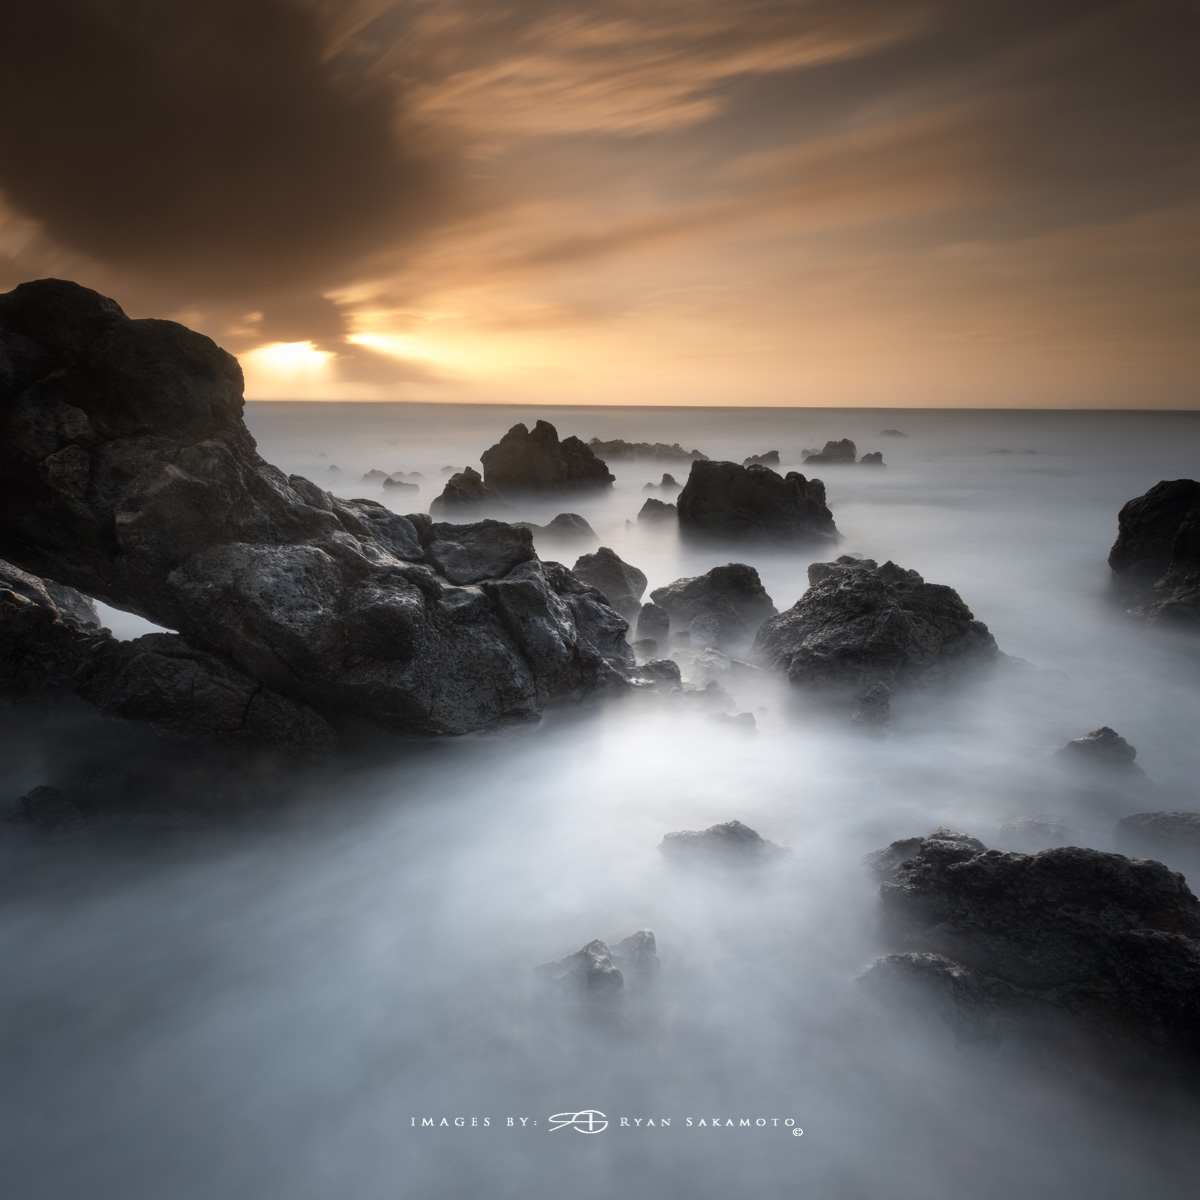 Sunrise from Sandy Beach Park, Honolulu, Hawaii  Fuji XT2  |  60 sec. |  f/8  |  ISO 160 | Fujinon XF 10-25mm F/4 R OIS @10mm   BREAKTHROUGH stacked filters, 3-stop soft GND, 3-stop reverse grad & 10-stop ND  Edited in Lightroom & Photoshop CC 2017 Copyright 2017 Ryan Sakamoto, All rights reserved